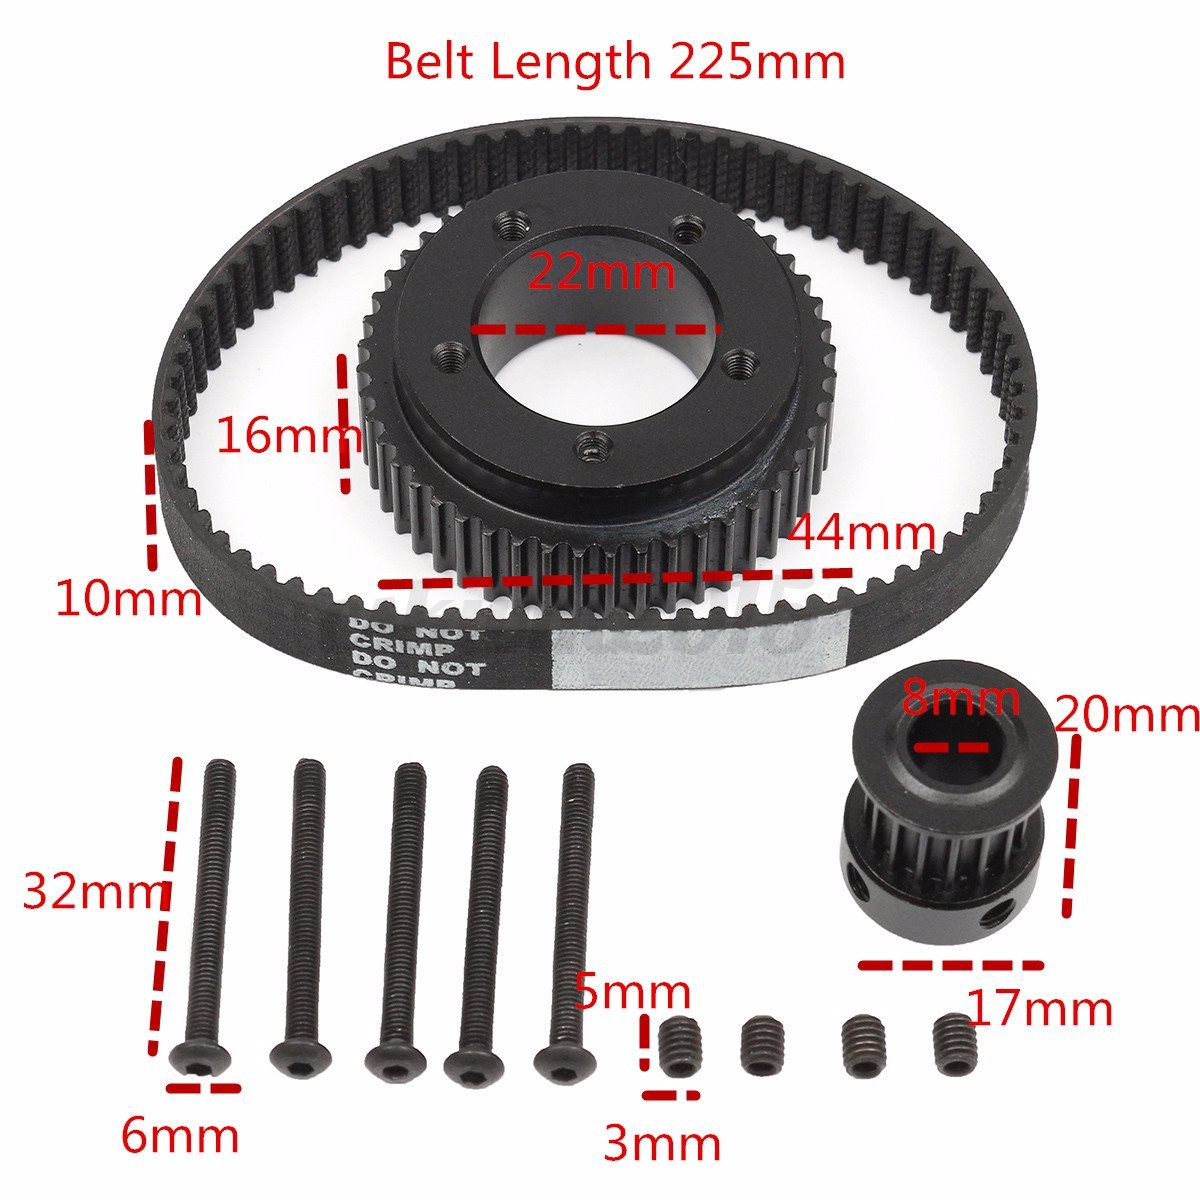 DIY-Electric-Skateboard-Flywheel-Pulley-Drive-Kit-10MM-Belt-For-72-70MM-Wheels thumbnail 6